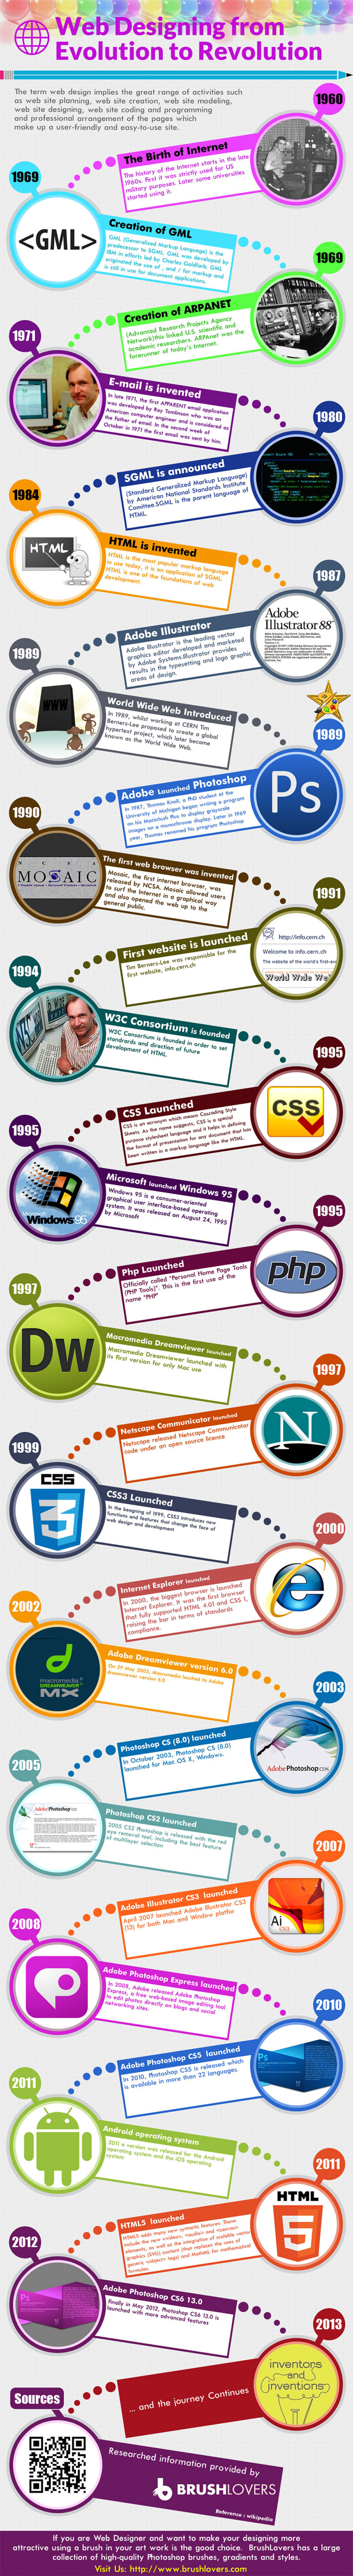 Web Designing from Evolution to Revolution  Infographic